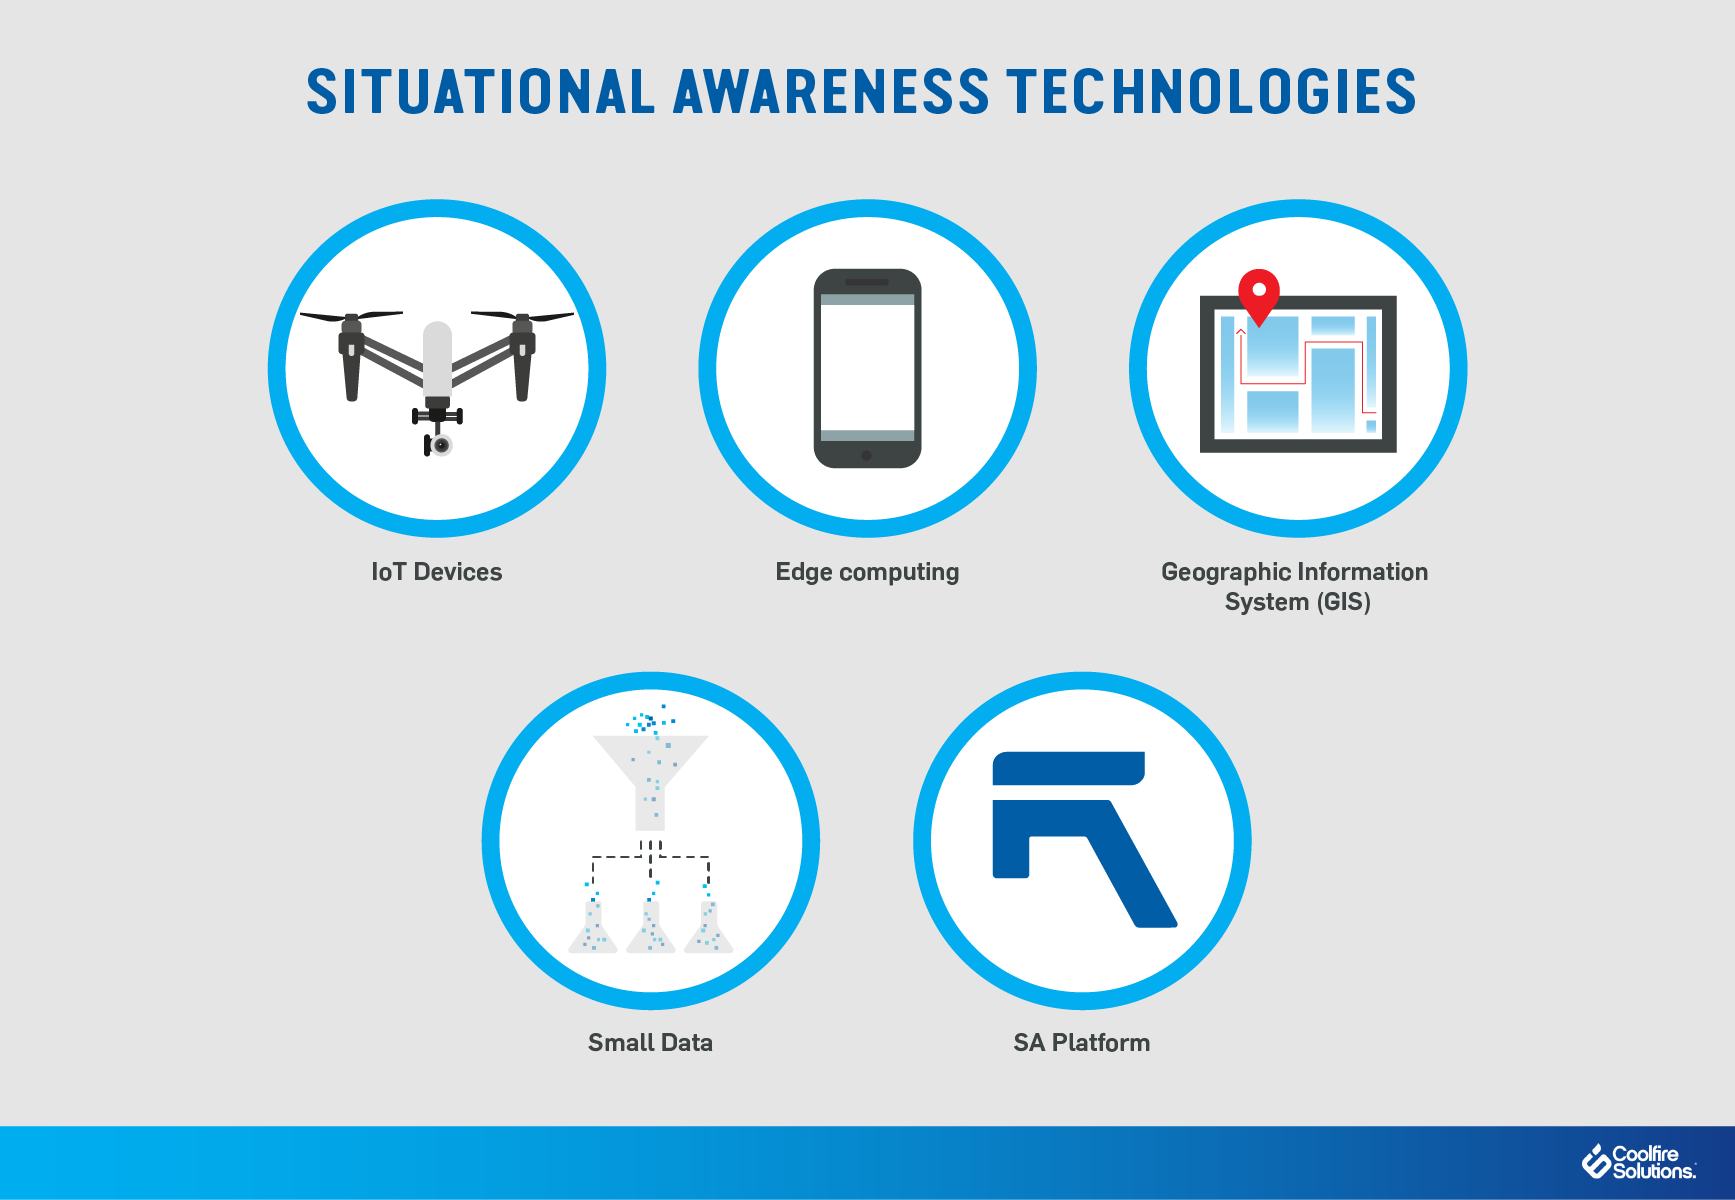 Situational Awareness Technologies